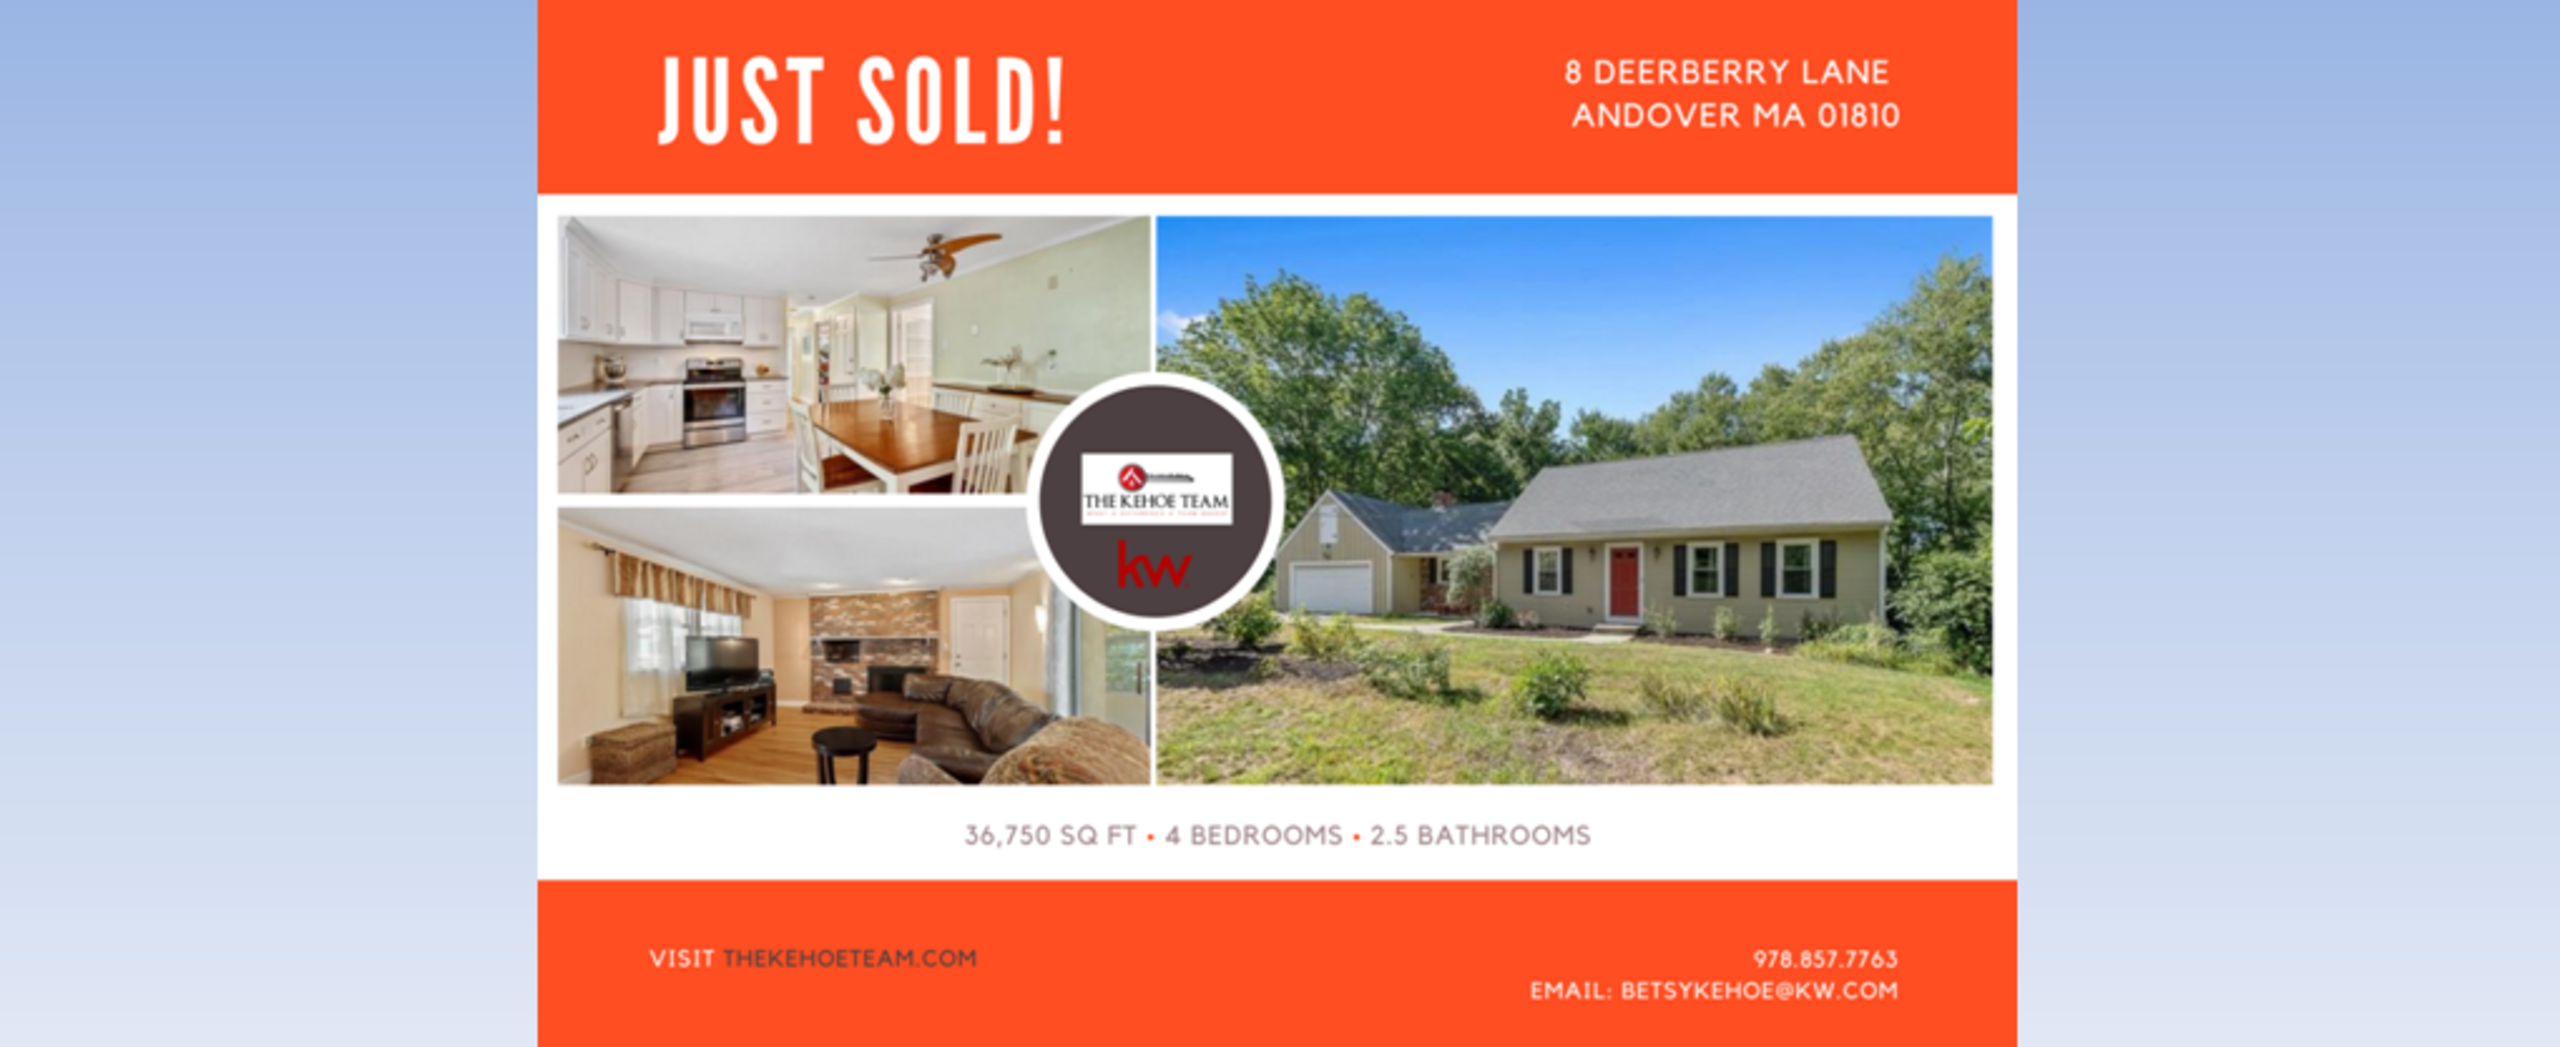 JUST SOLD - 8 DEERBERRY LANE ANDOVER MA 01810